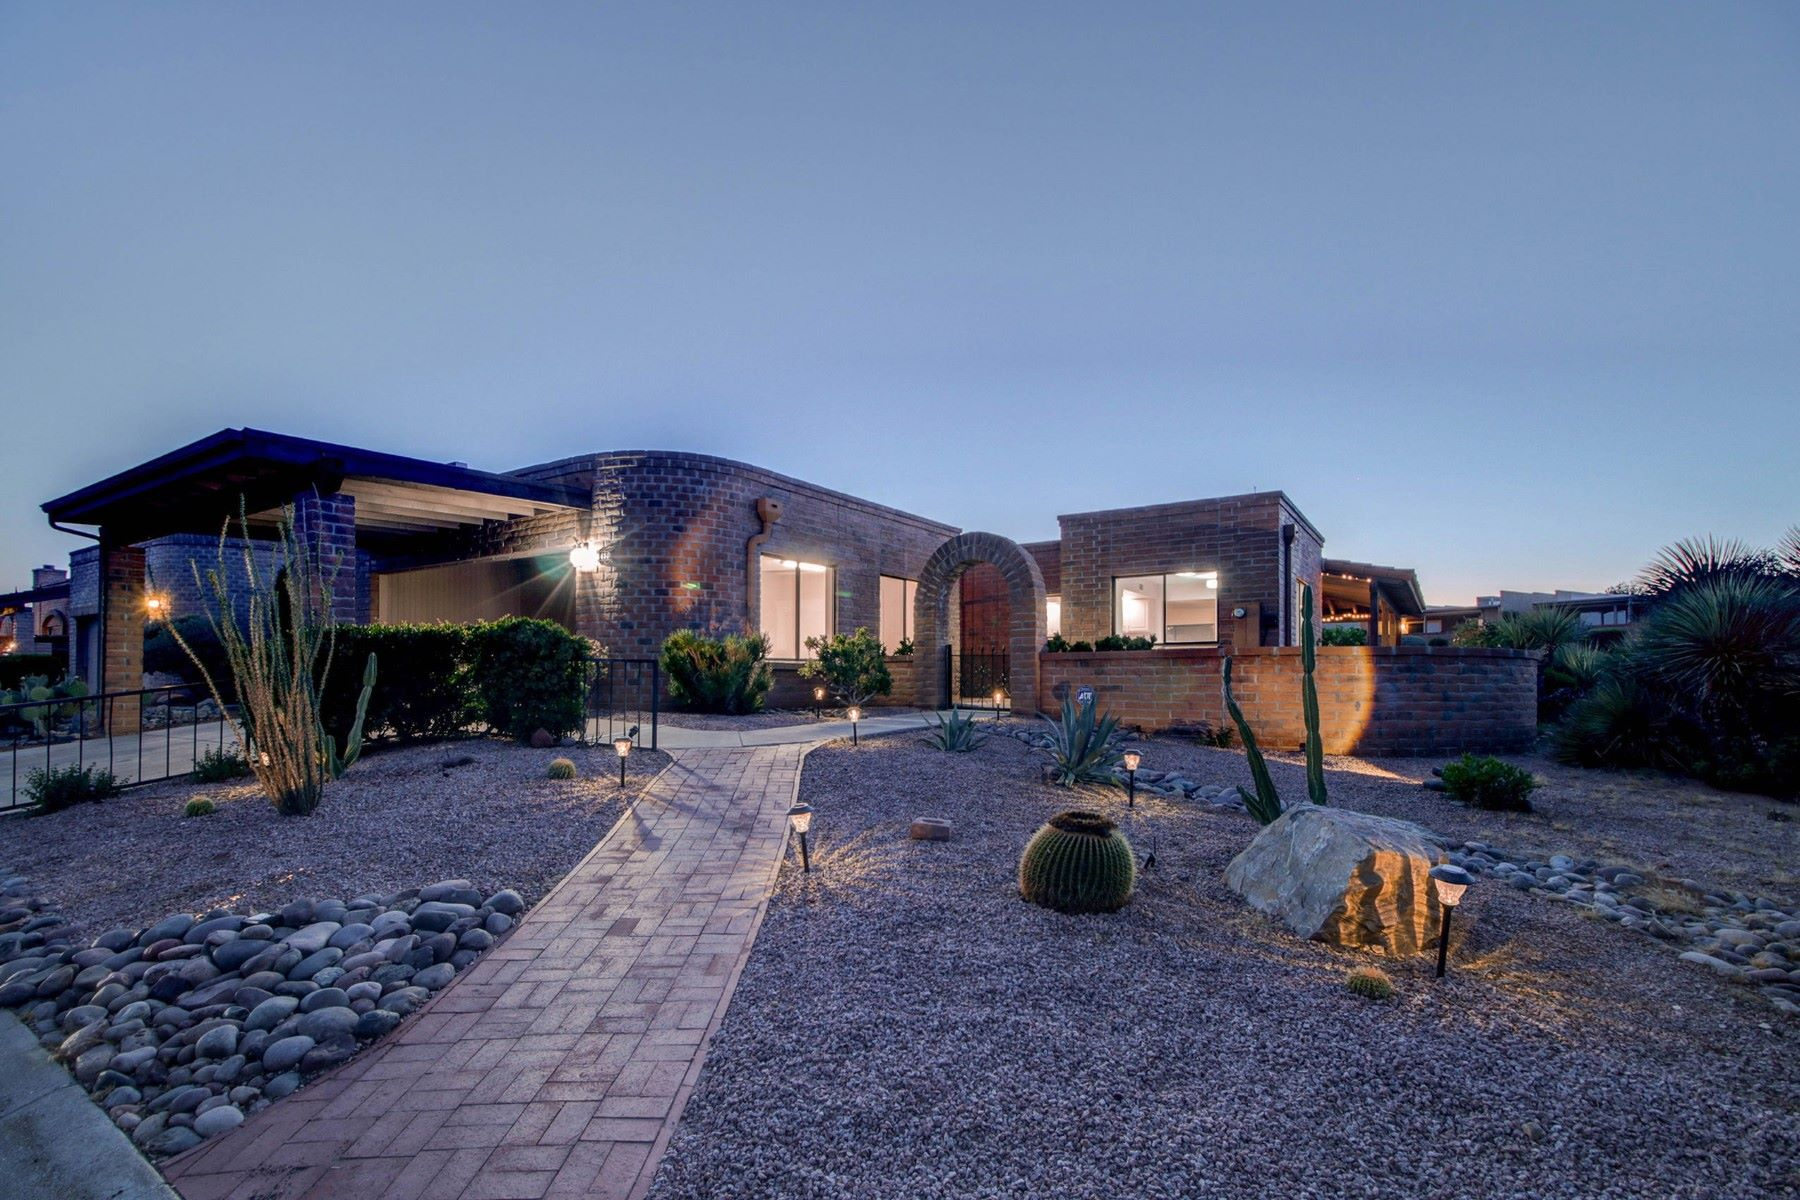 Single Family Homes for Active at Green Valley Southwest 1450 W Via De Roma Green Valley, Arizona 85622 United States